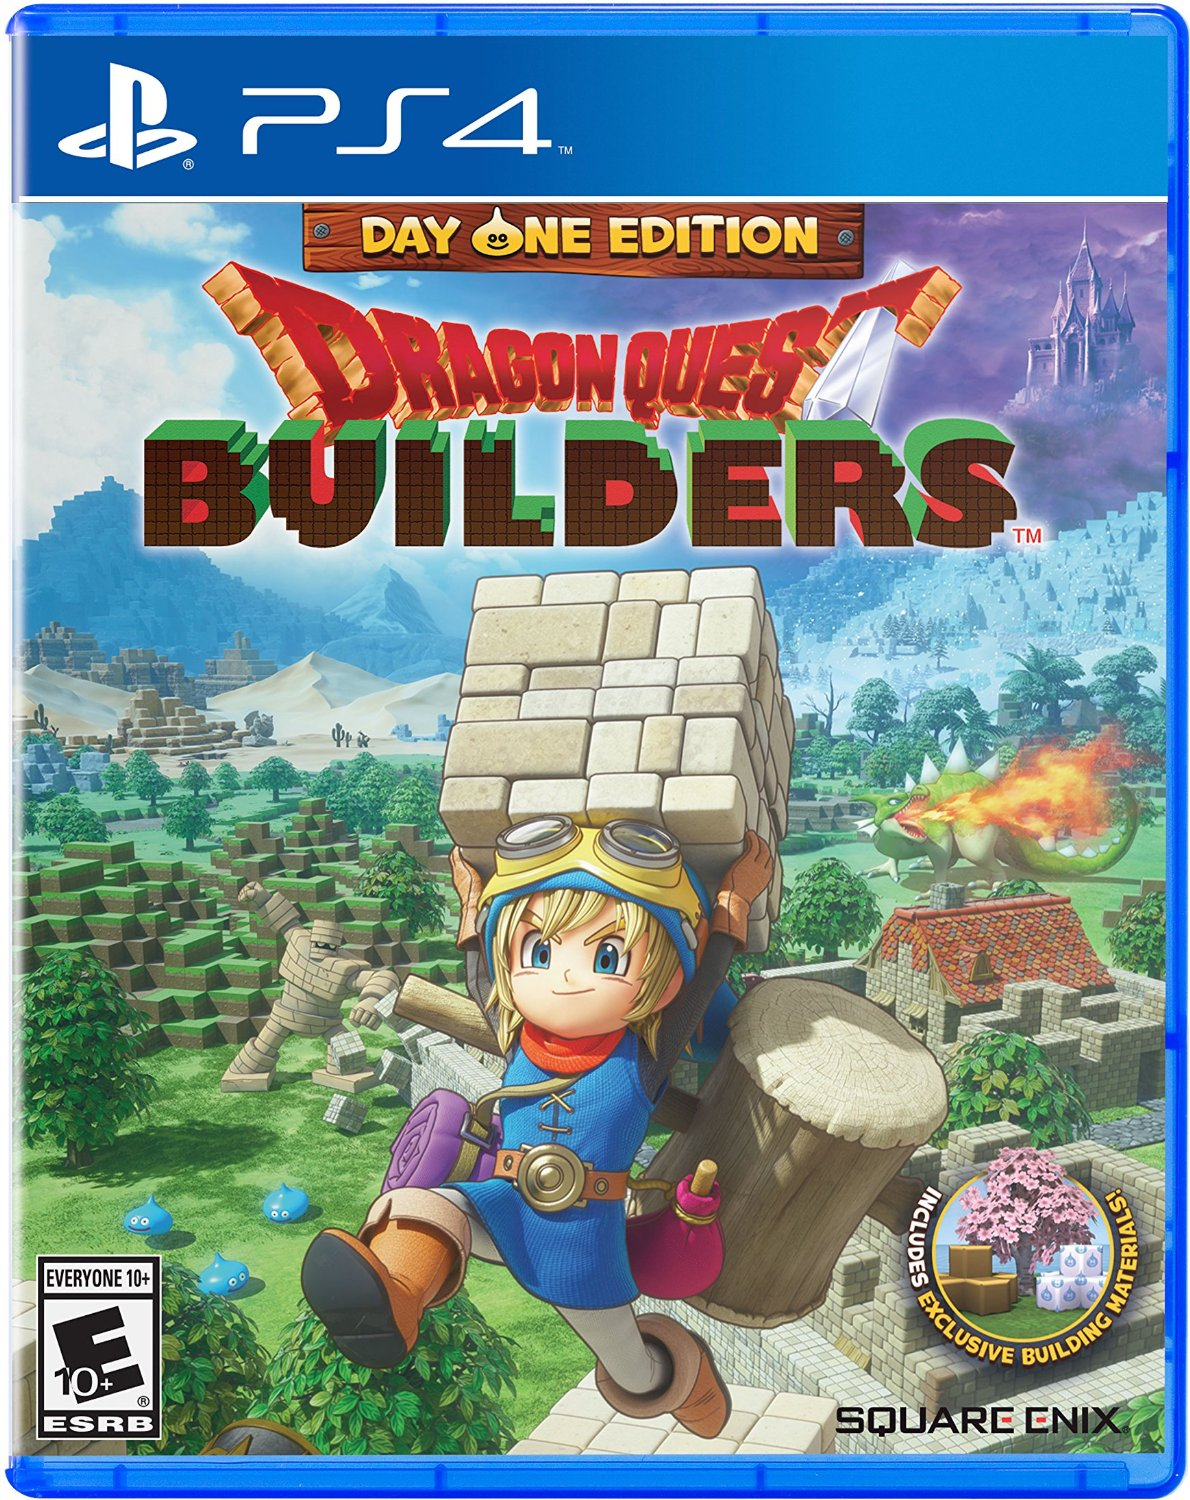 Dragon Quest Builders (PS4) Review 2